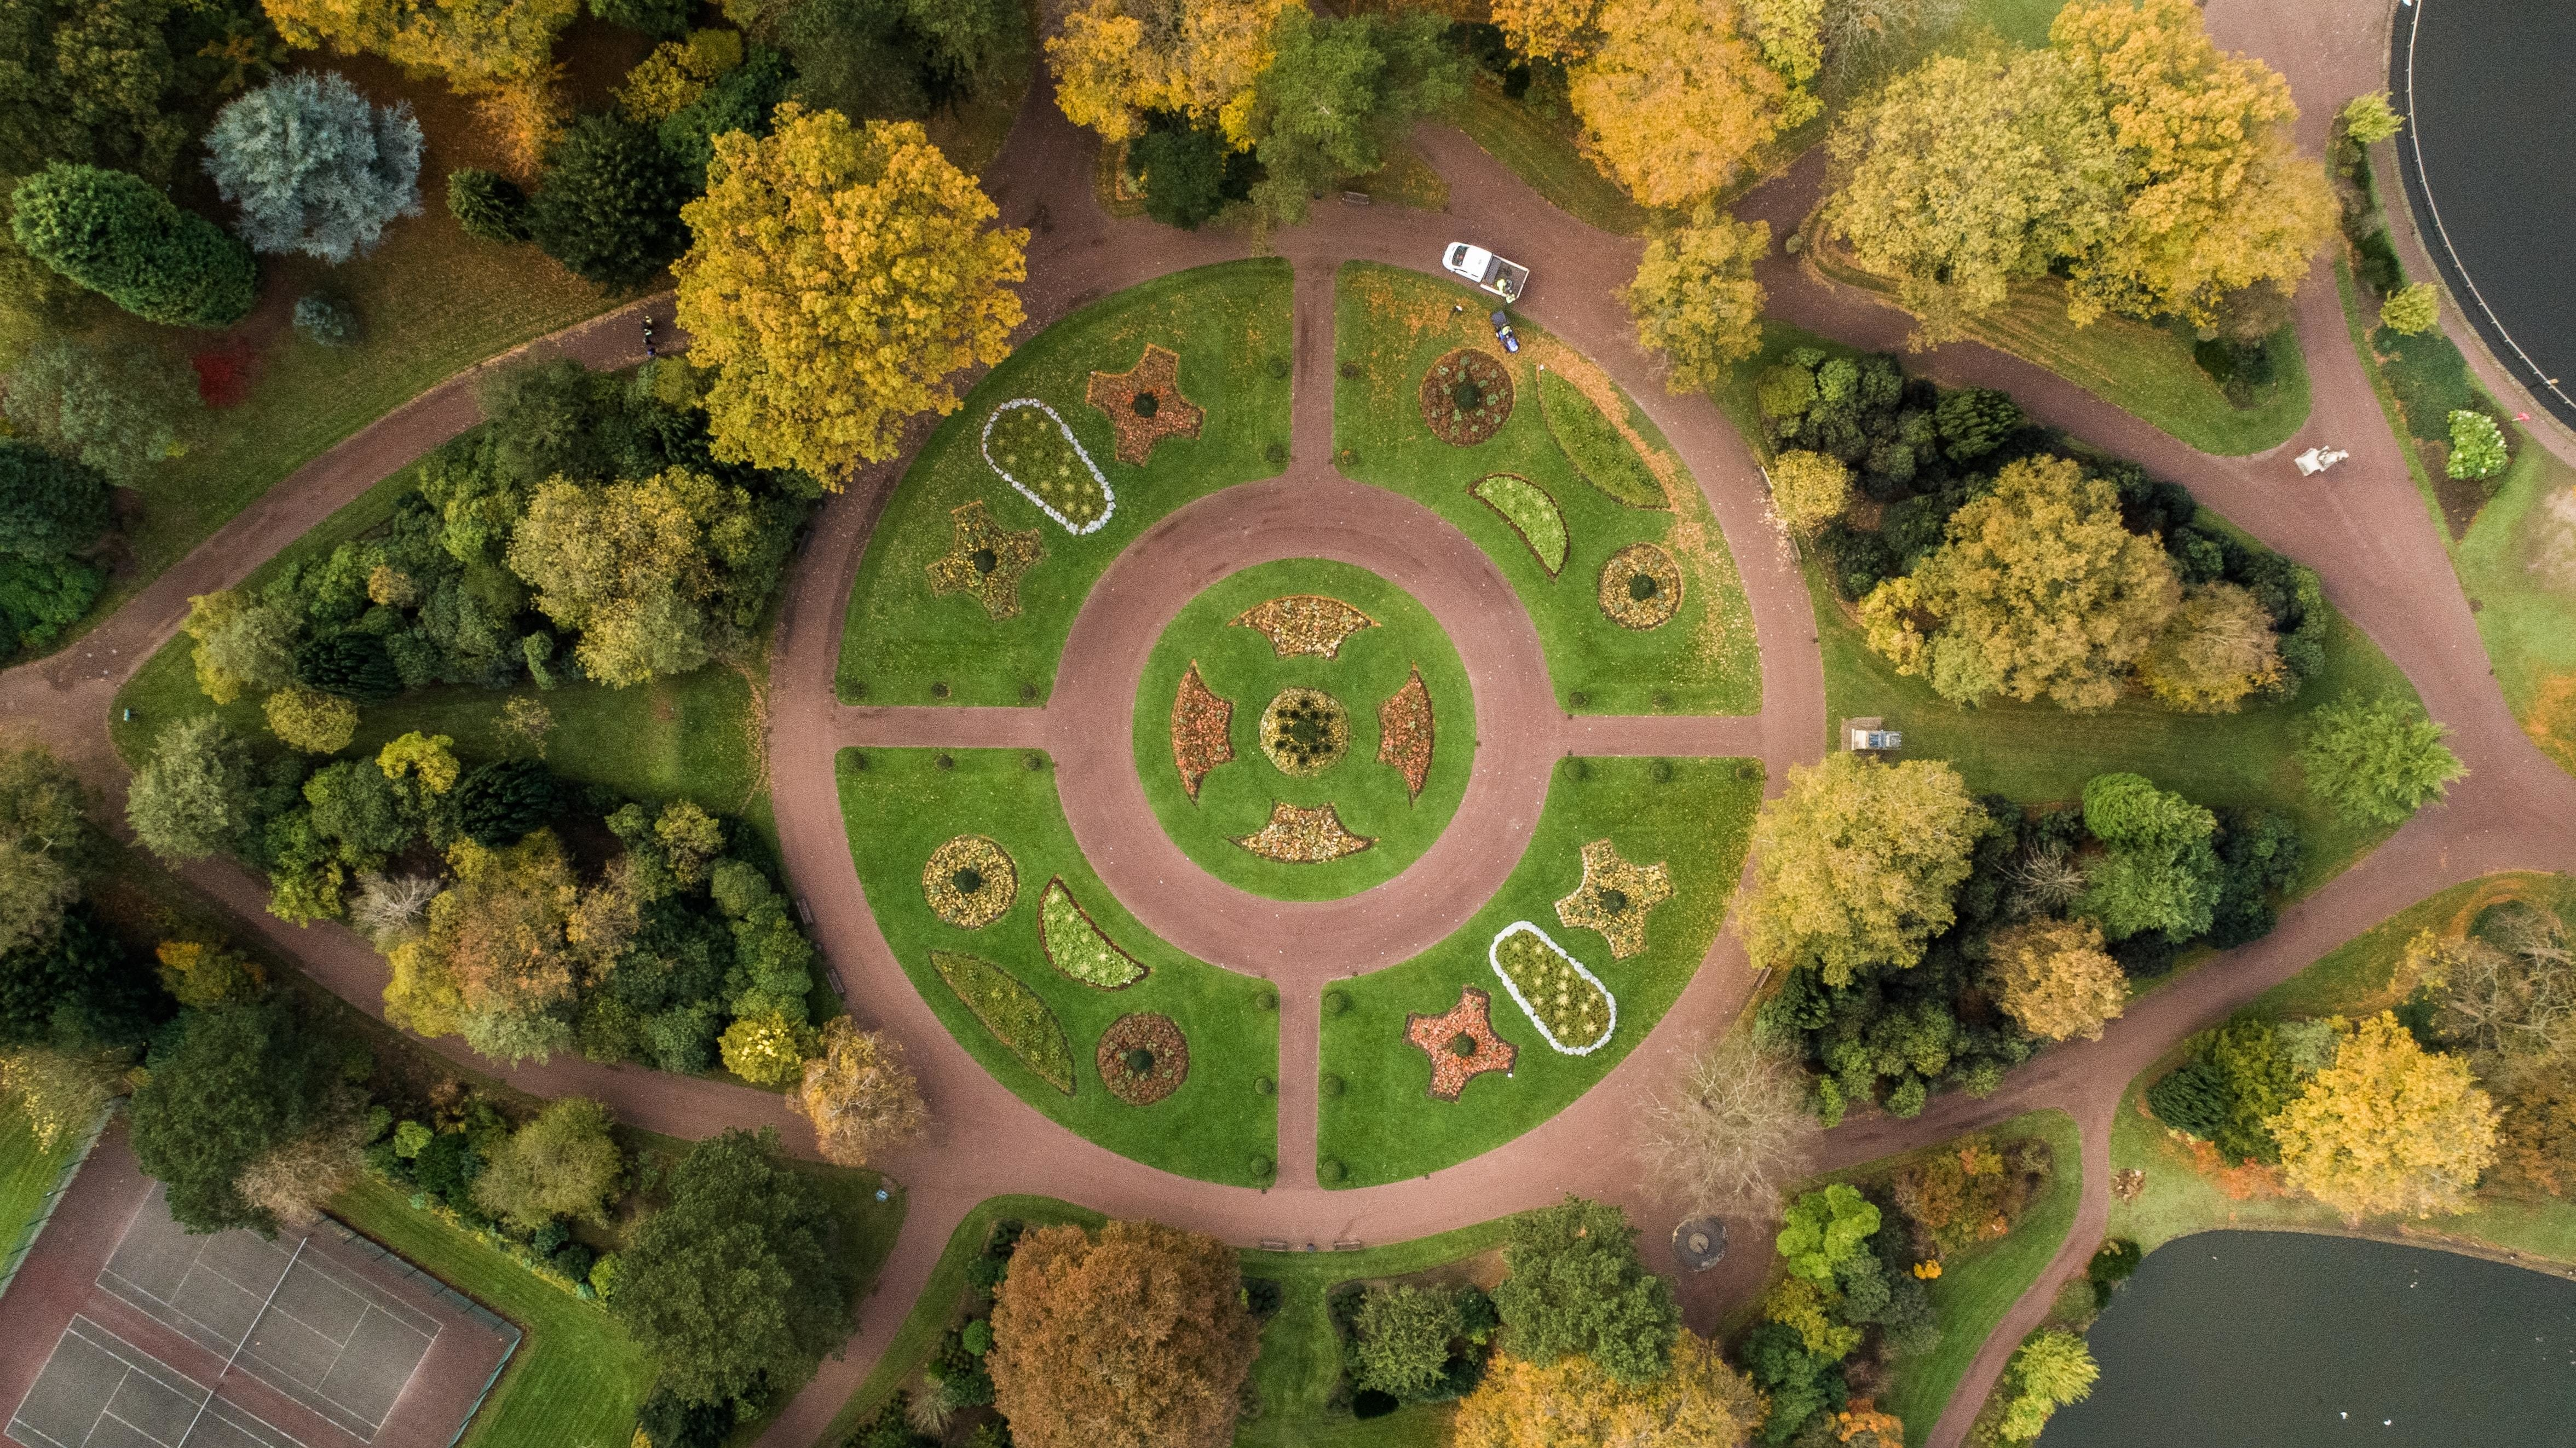 Circular park view from above.